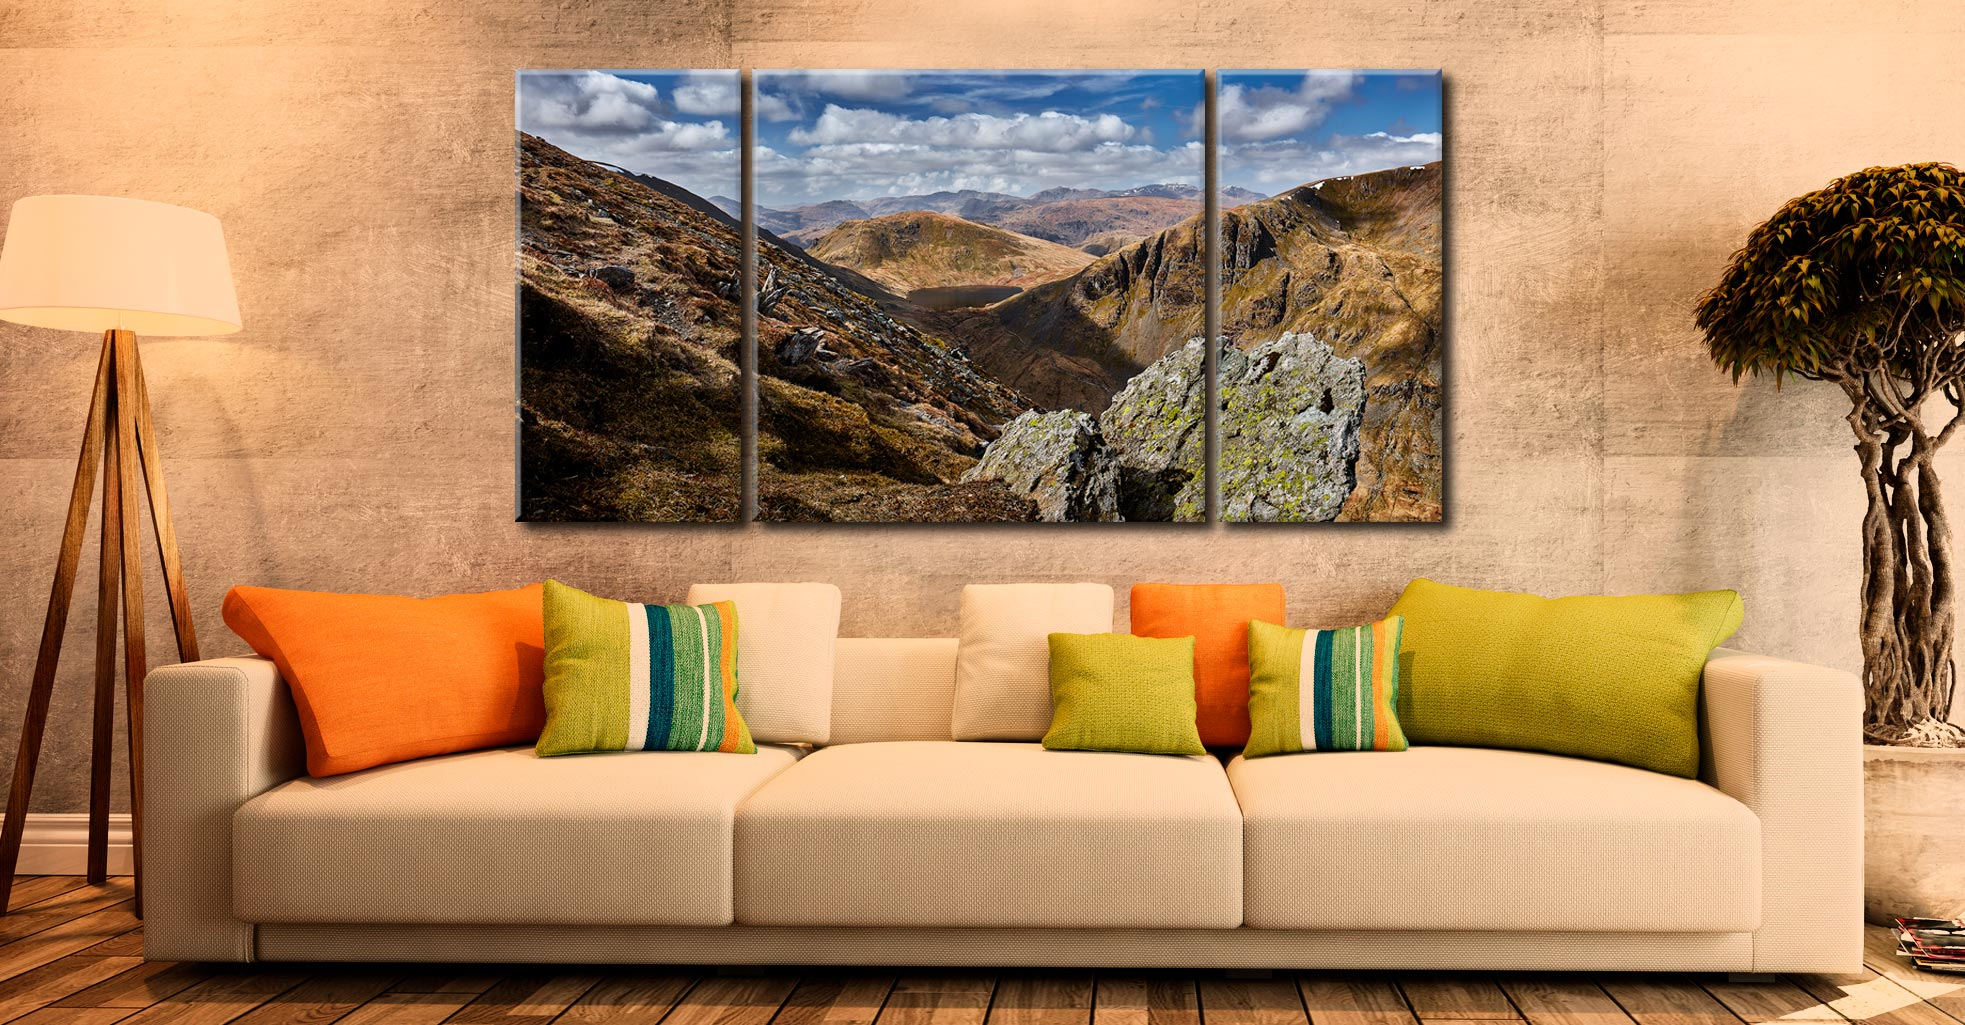 Grisedale Tarn in the Morning Sunshine - 3 Panel Wide Centre Canvas on Wall